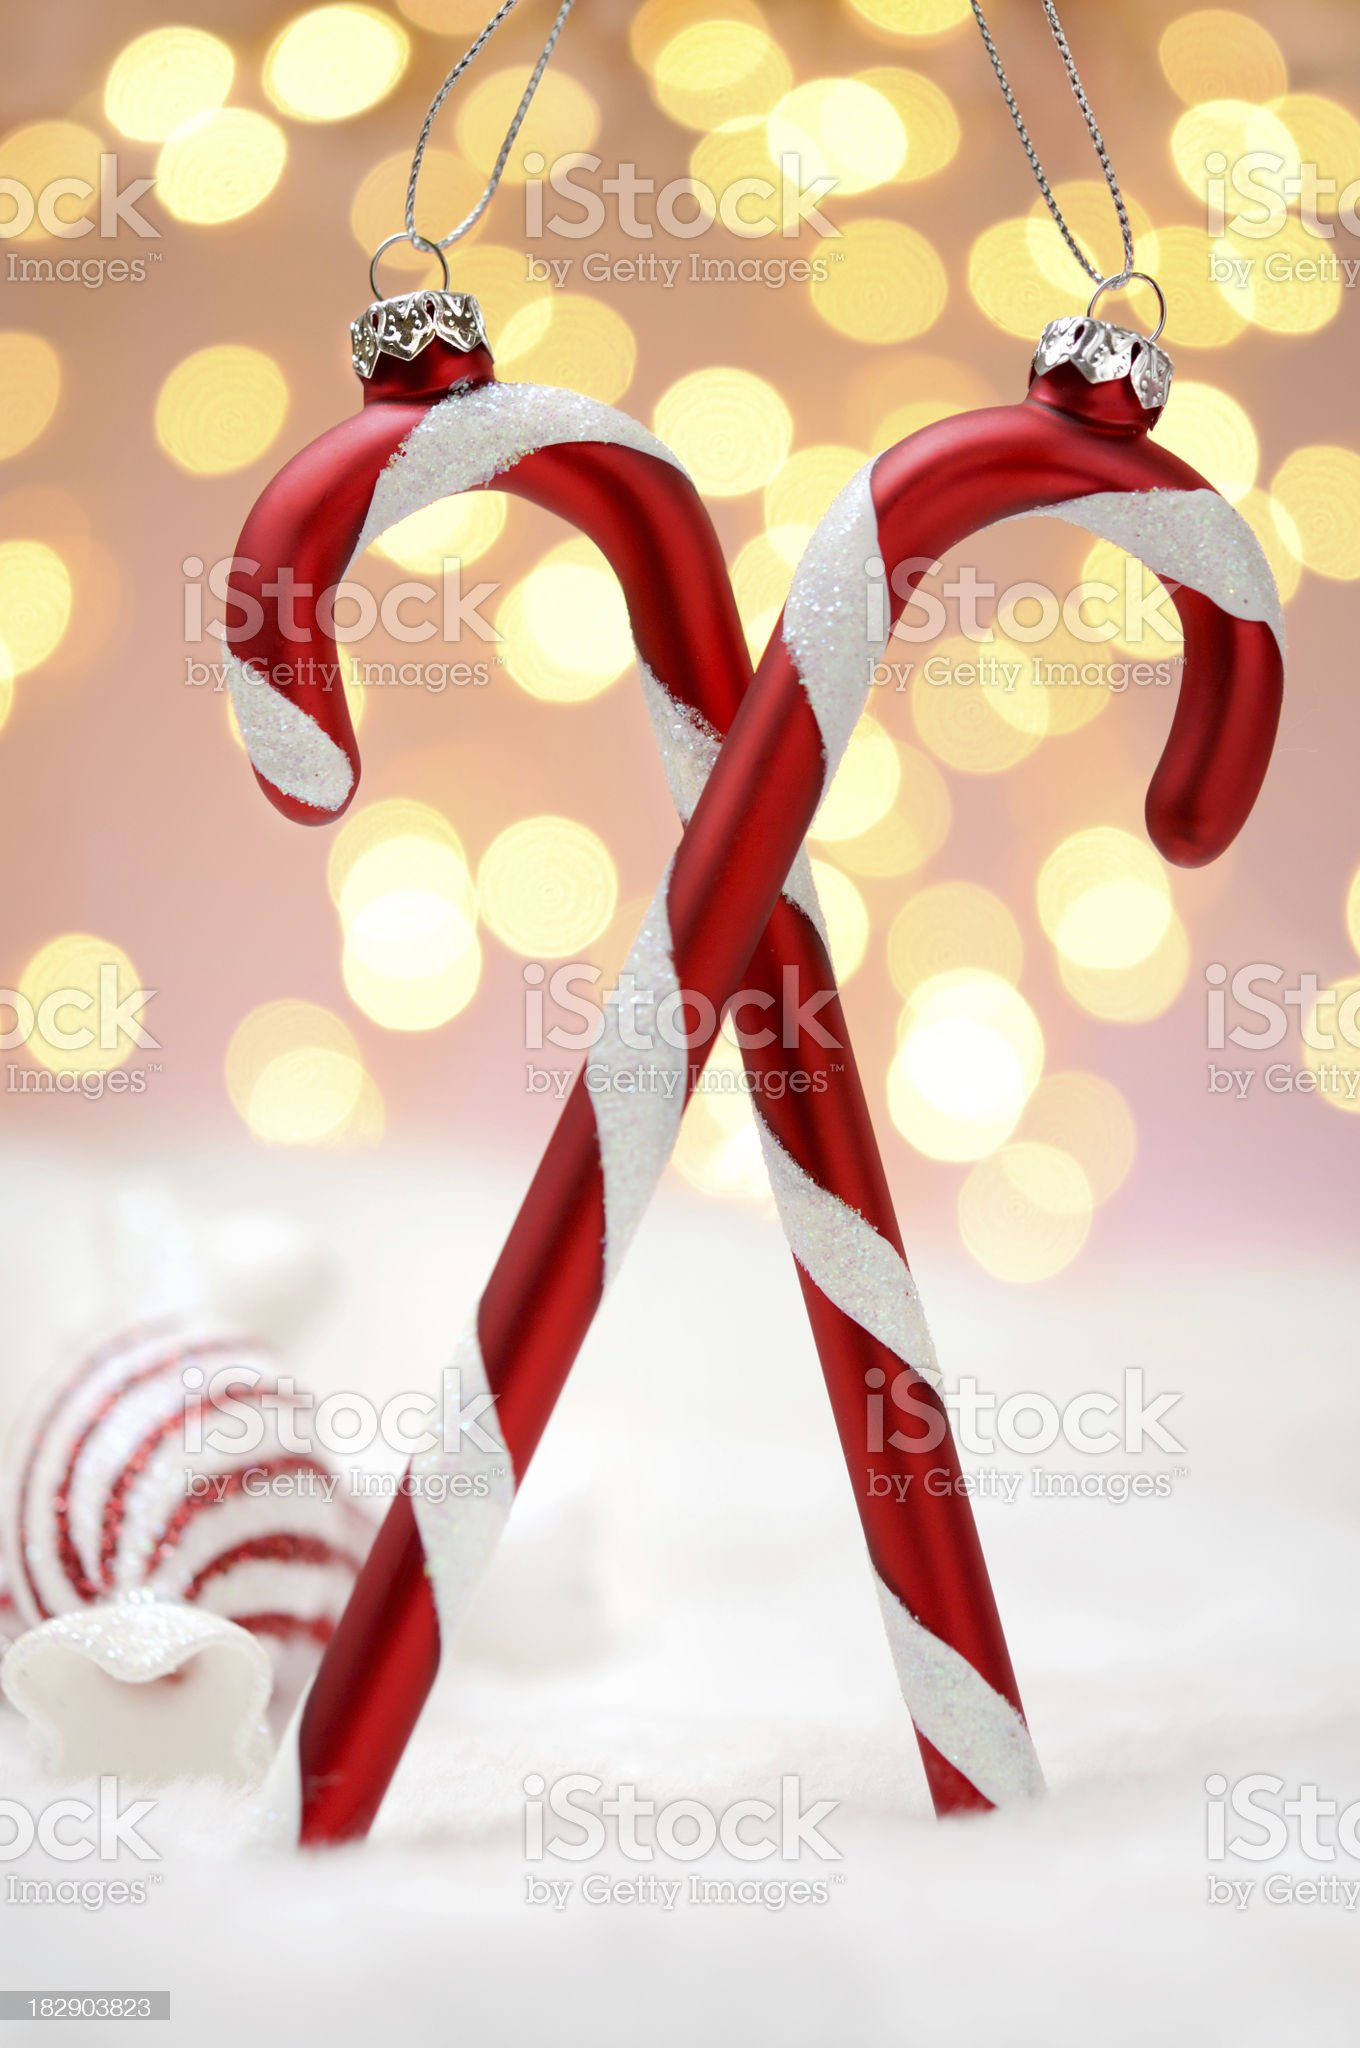 Candy Cane Christmas Ornament royalty-free stock photo